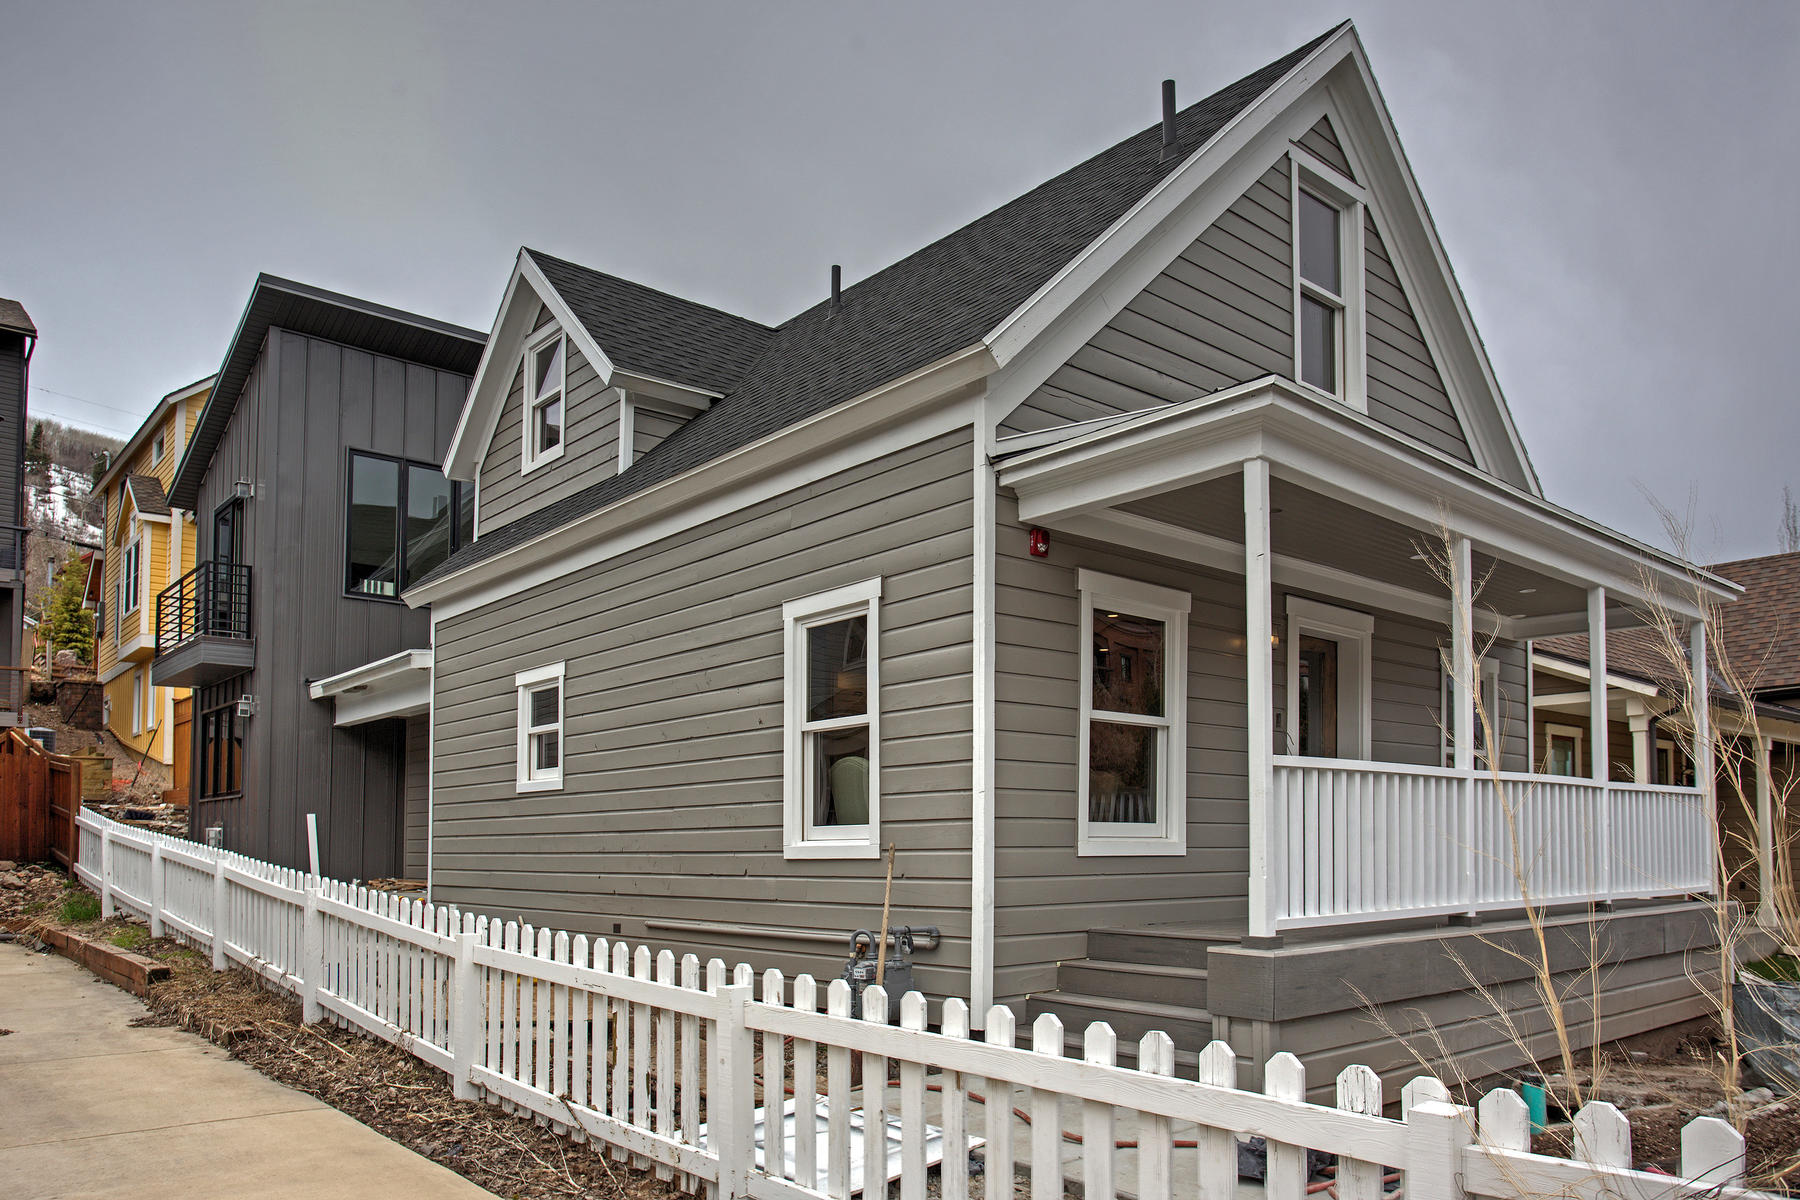 Single Family Home for Sale at Award winning historic remodel in Old Town 923 Park Ave Park City, Utah, 84060 United States